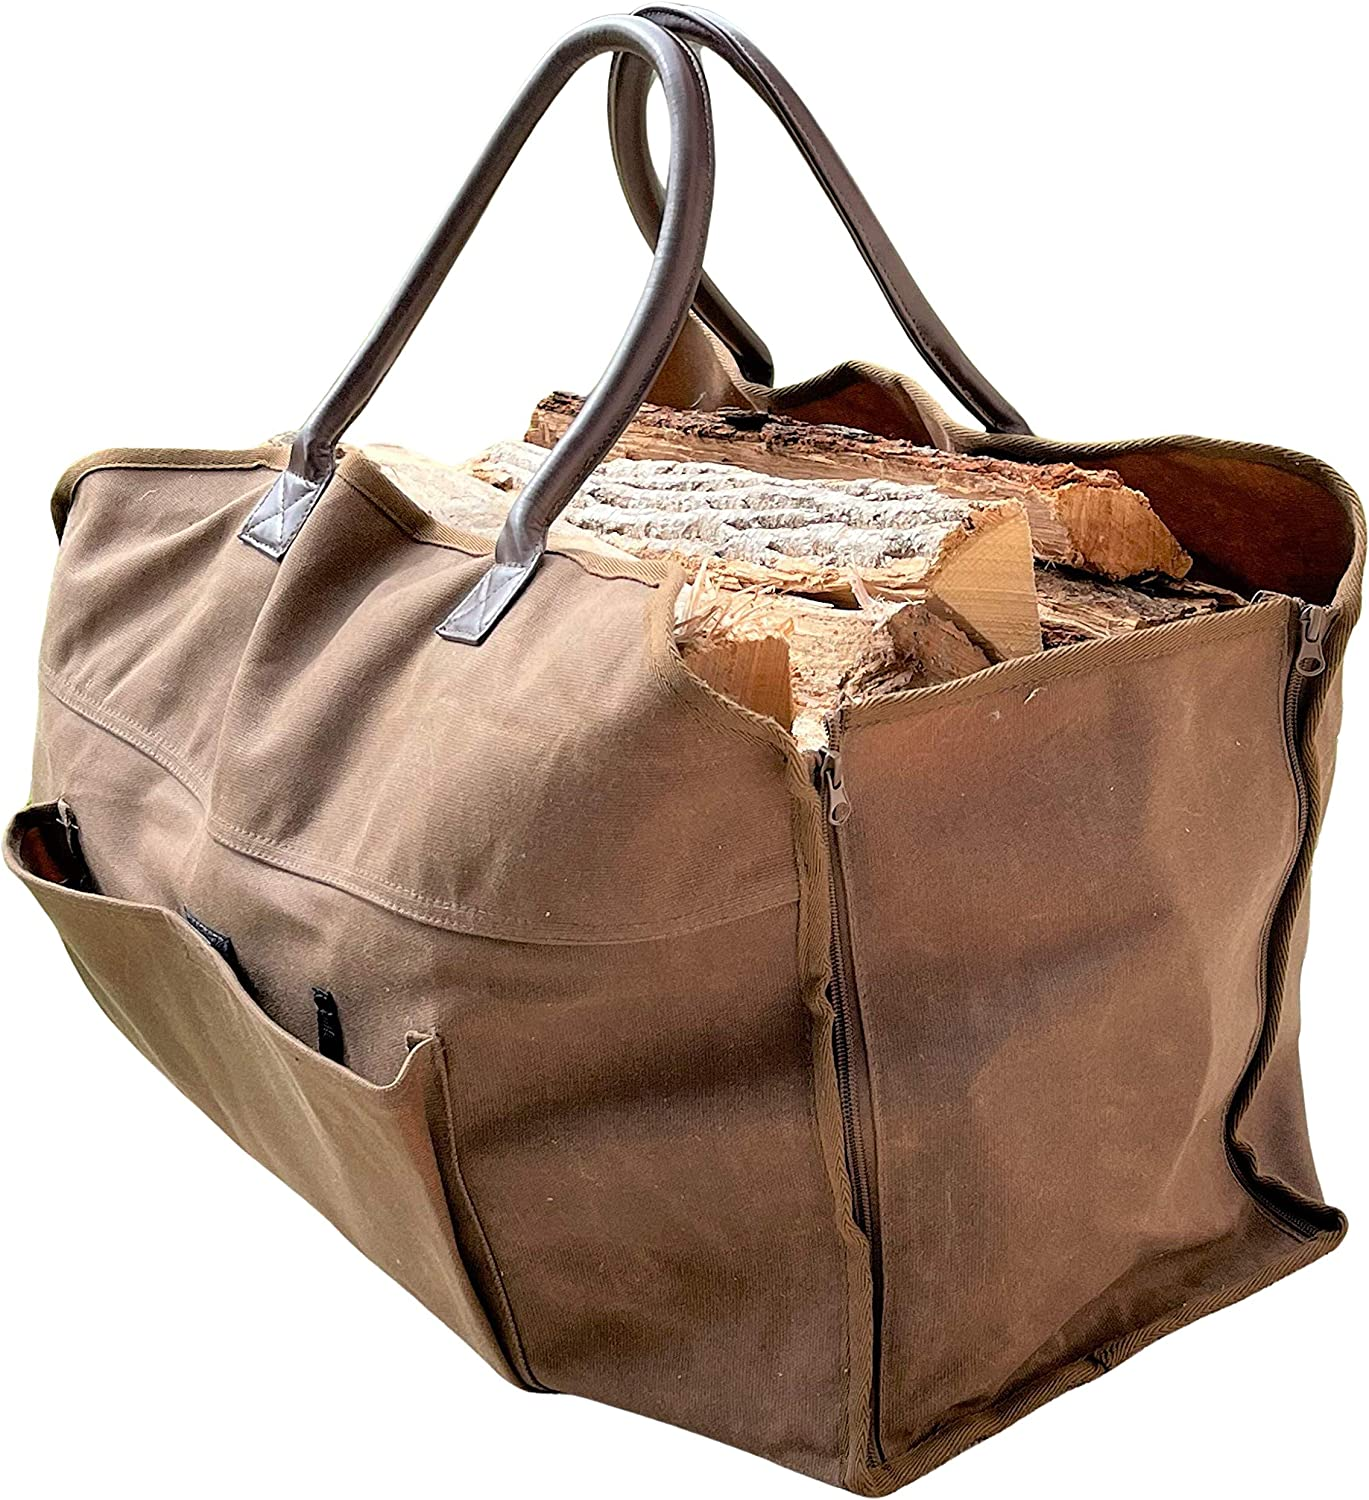 Trendy Home & Garden 20oz Heavy Duty Waxed Canvas Tote Bag - Firewood Carrier Optimal BBQ Camping Accessories - Flexible Water-Resistant Coating with 4 Self-Locking Zipper